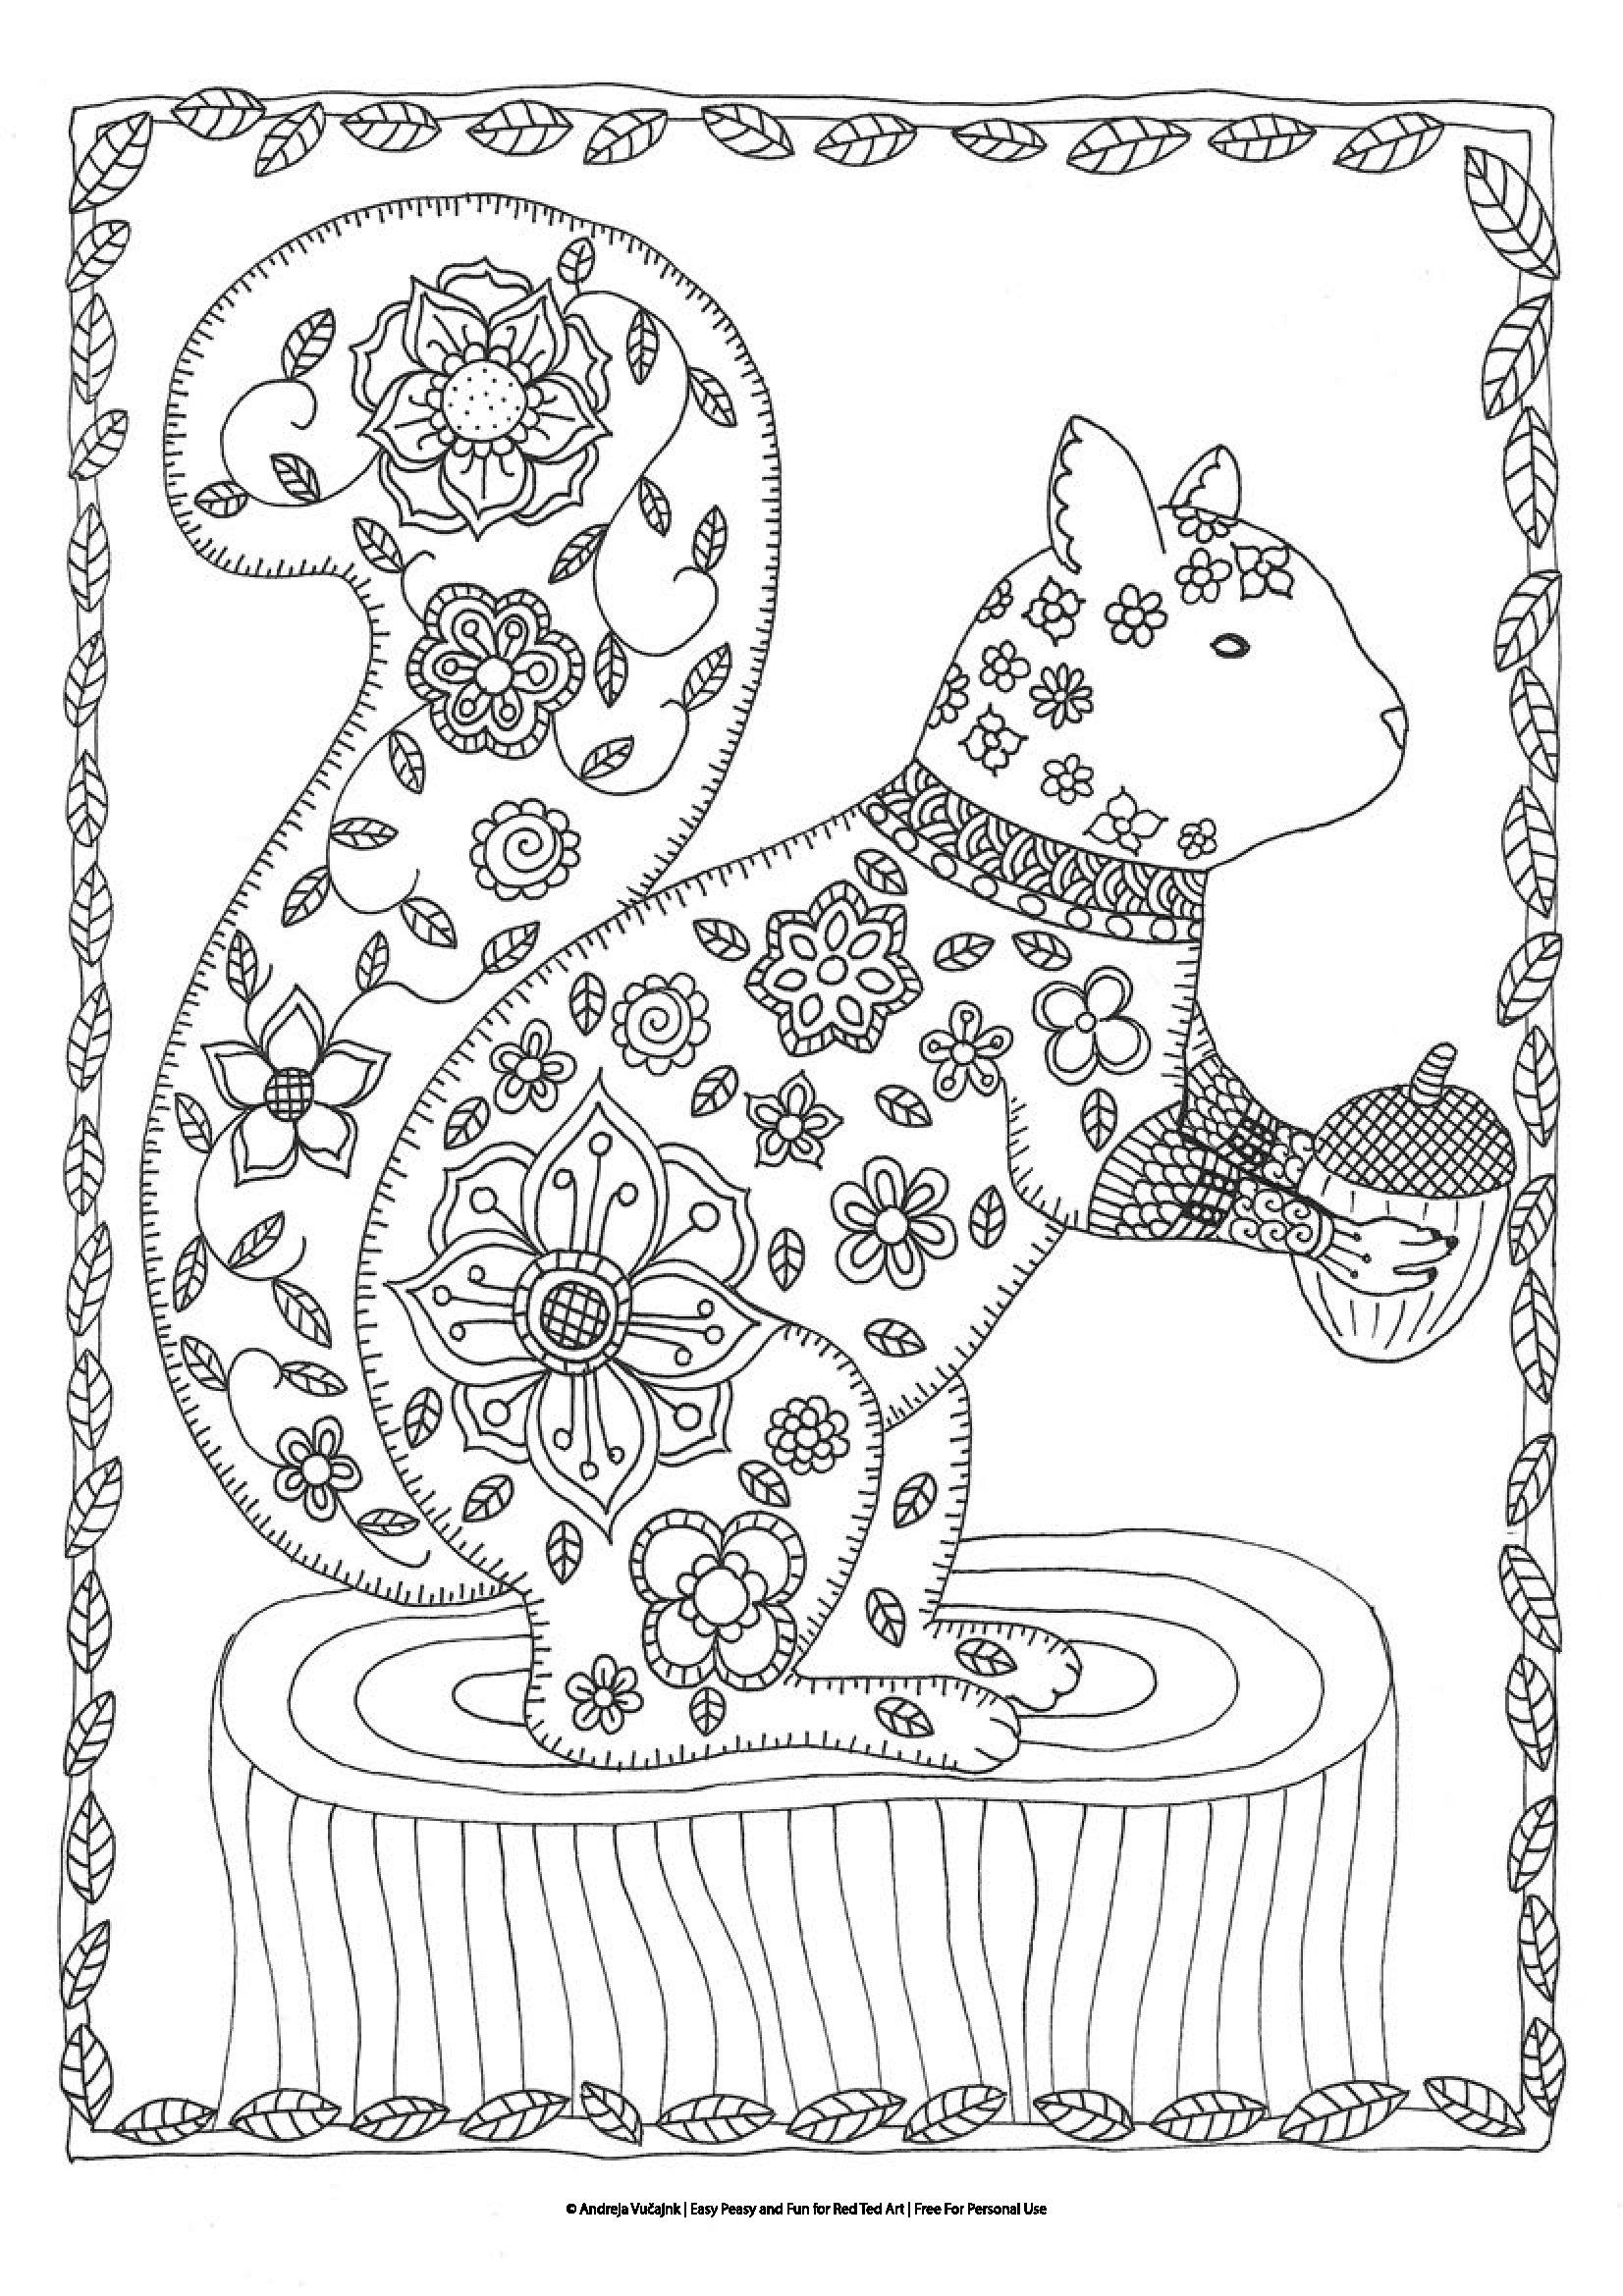 Pin by Kristi Magers on Coloring Pages (Mice & Rodents